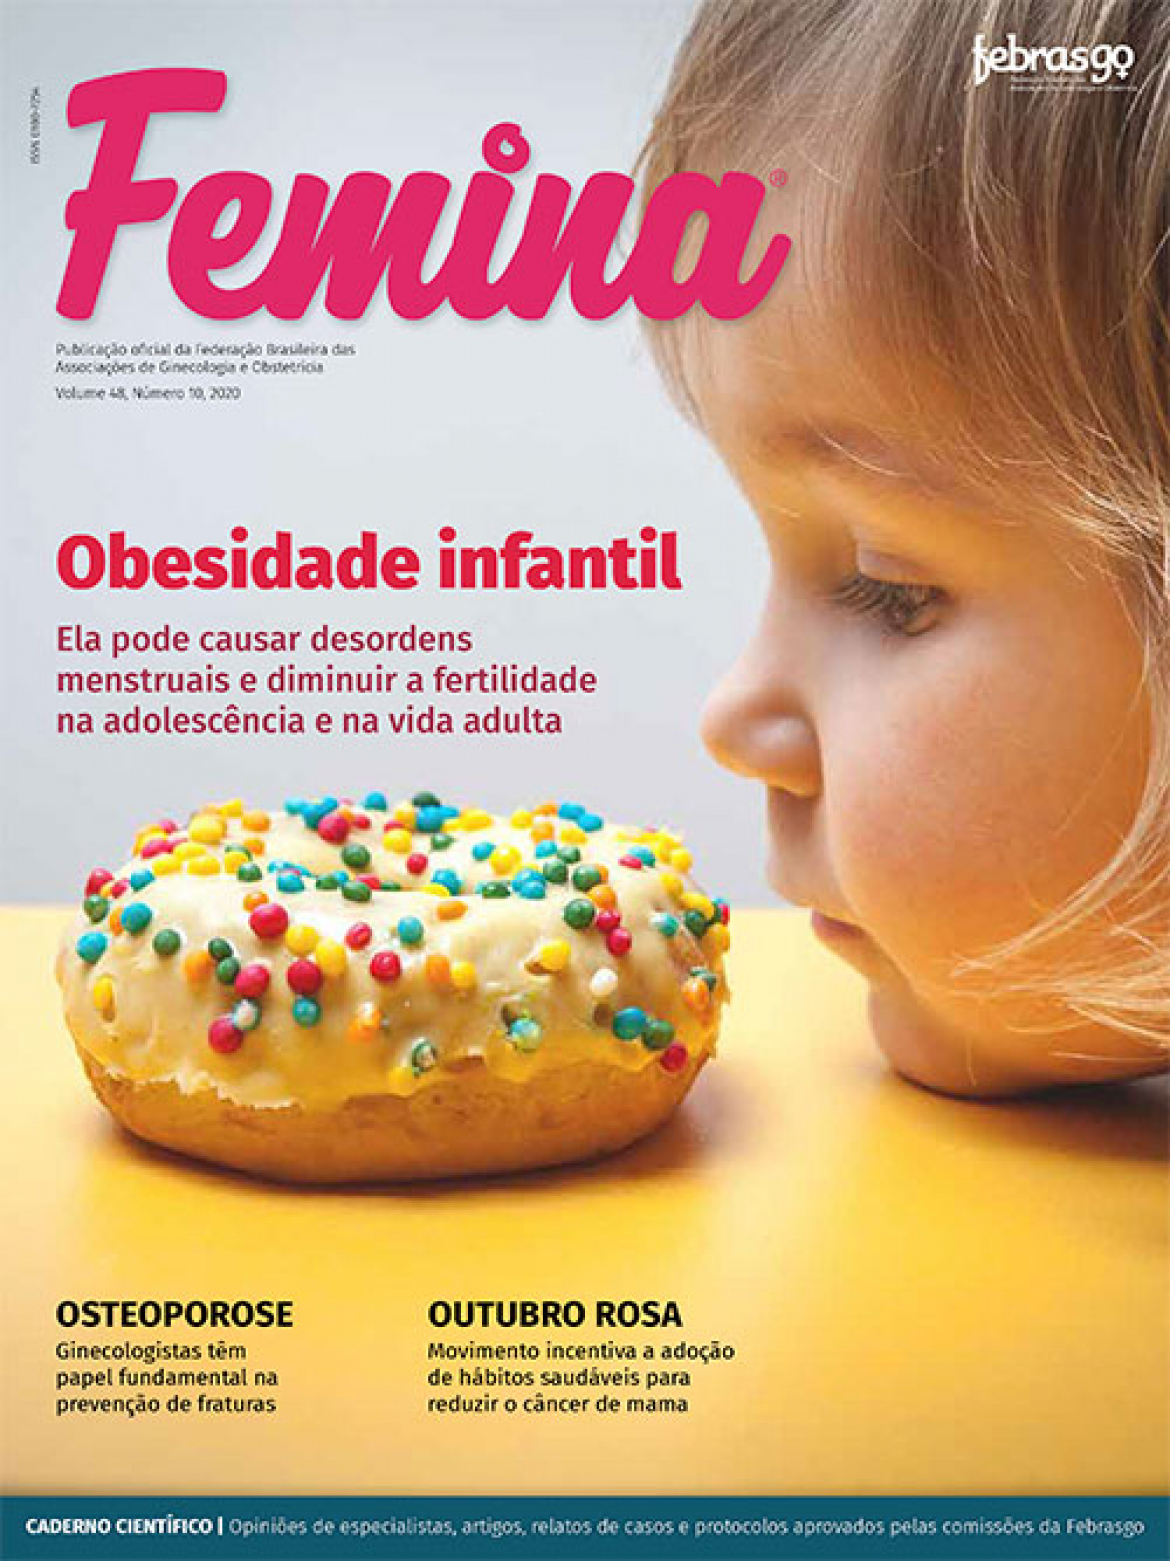 REVISTA FEMINA - 2020 | VOL 48 | Nº 10